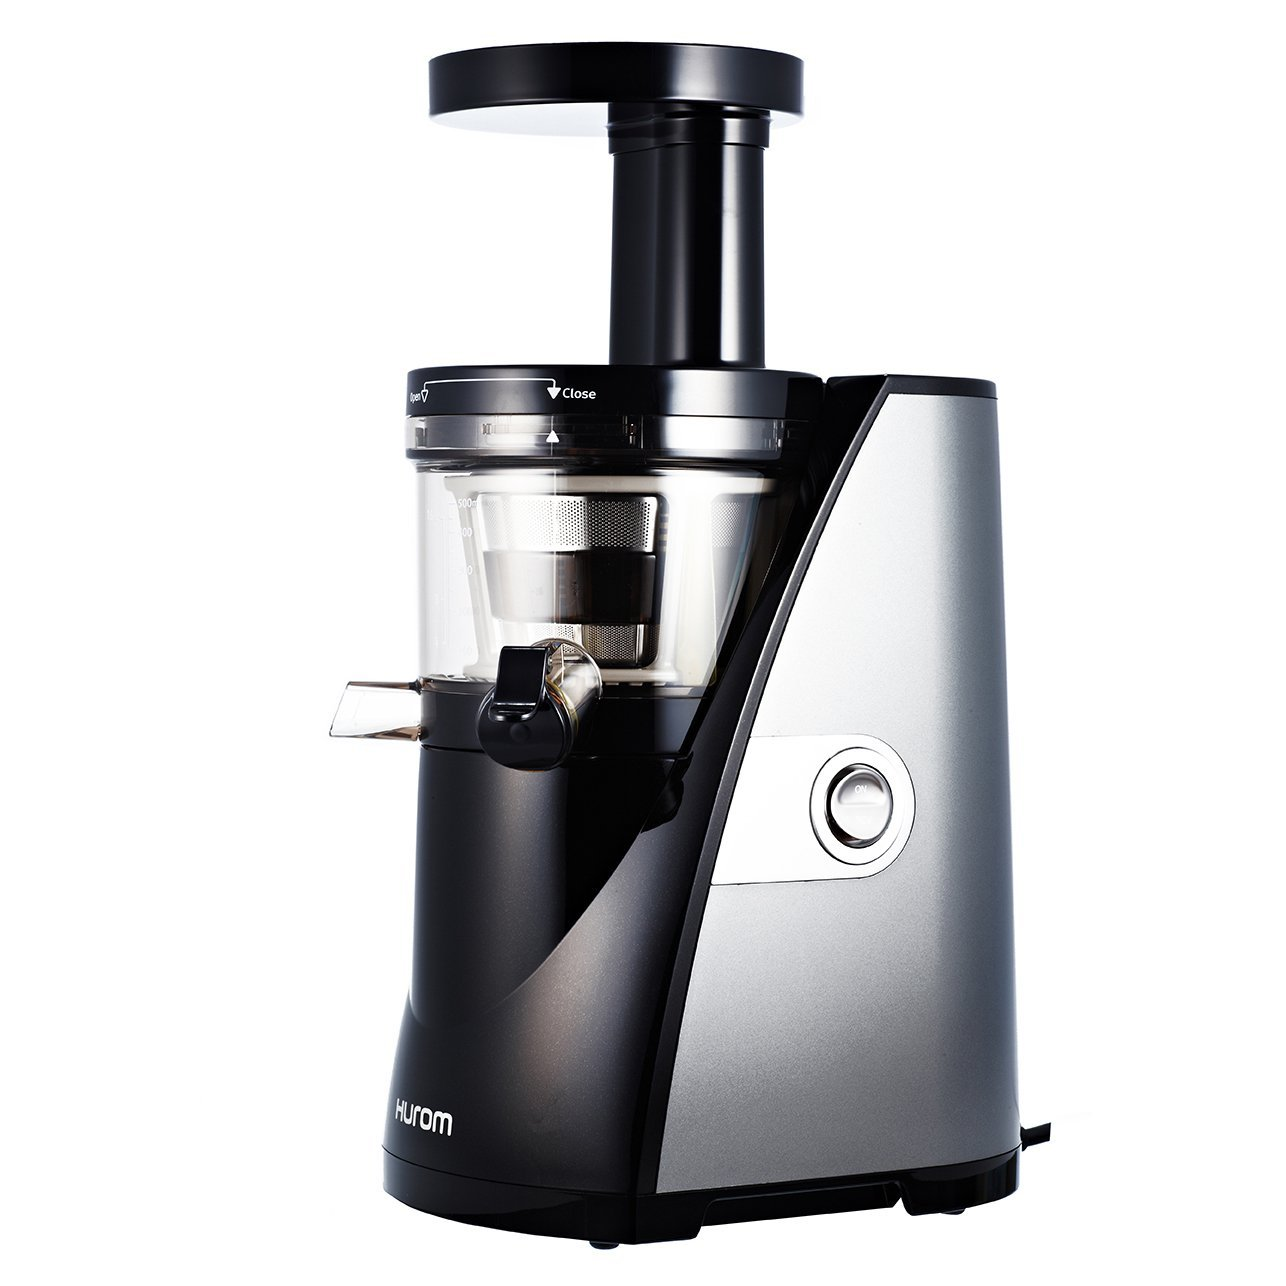 Hurom Slow Juicer How To Use : 5 Best Hurom Juicer Reviews UPDATED: 2018 The Home Savant